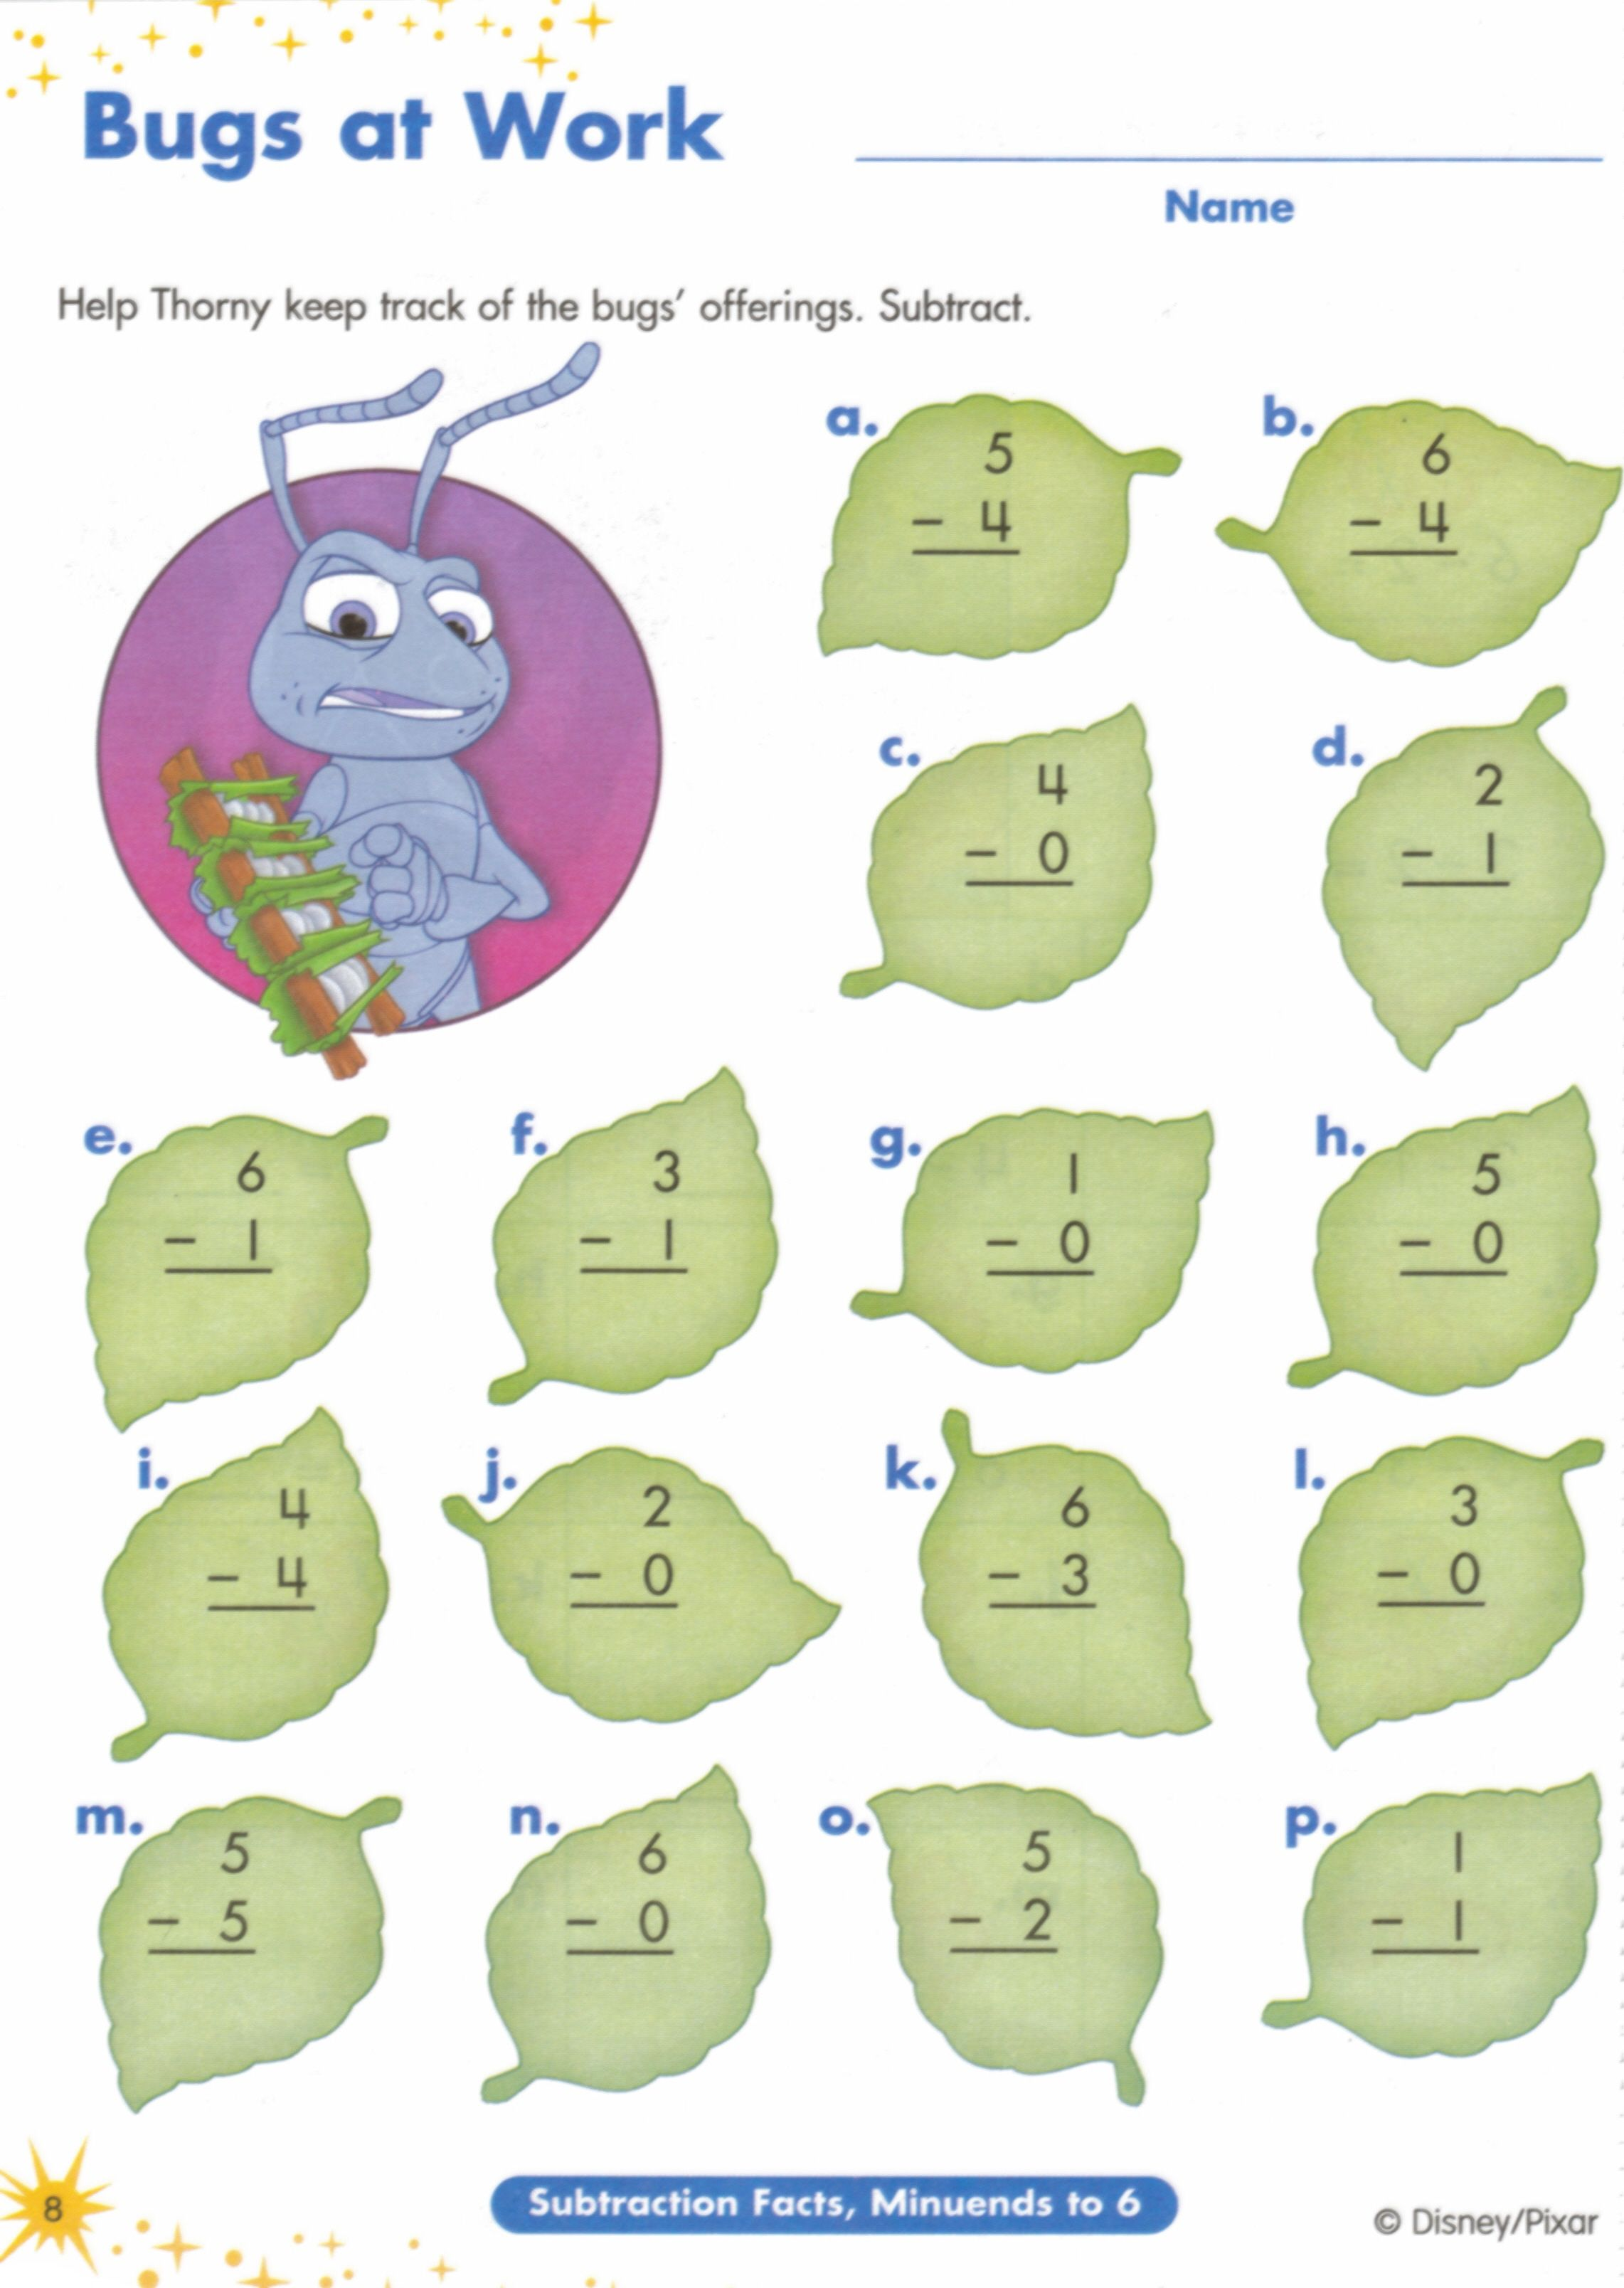 Weirdmailus  Picturesque  Images About Worksheets On Pinterest  Fun Facts For Kids  With Glamorous  Images About Worksheets On Pinterest  Fun Facts For Kids Earth Day Worksheets And Jungles With Appealing Solving Integers Worksheet Also Worksheets For Simple Present Tense In Addition Decay Series Worksheet And Nouns Worksheets For Grade  As Well As Tree Diagrams Worksheets Additionally Math Worksheets For Grade  Addition And Subtraction From Pinterestcom With Weirdmailus  Glamorous  Images About Worksheets On Pinterest  Fun Facts For Kids  With Appealing  Images About Worksheets On Pinterest  Fun Facts For Kids Earth Day Worksheets And Jungles And Picturesque Solving Integers Worksheet Also Worksheets For Simple Present Tense In Addition Decay Series Worksheet From Pinterestcom